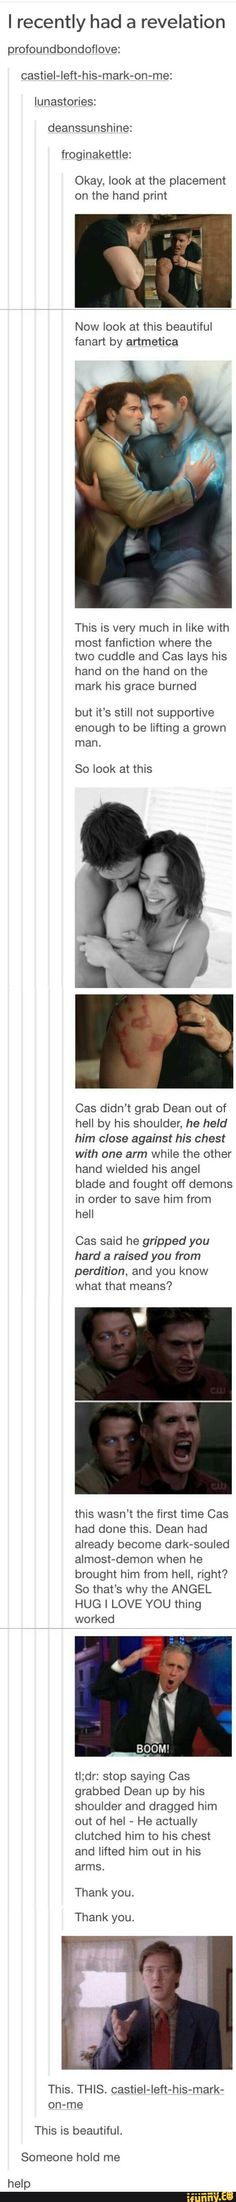 Maybe that's why Demon!Dean roared like he did. He wasn't just angry that he was stuck; he was remembering.